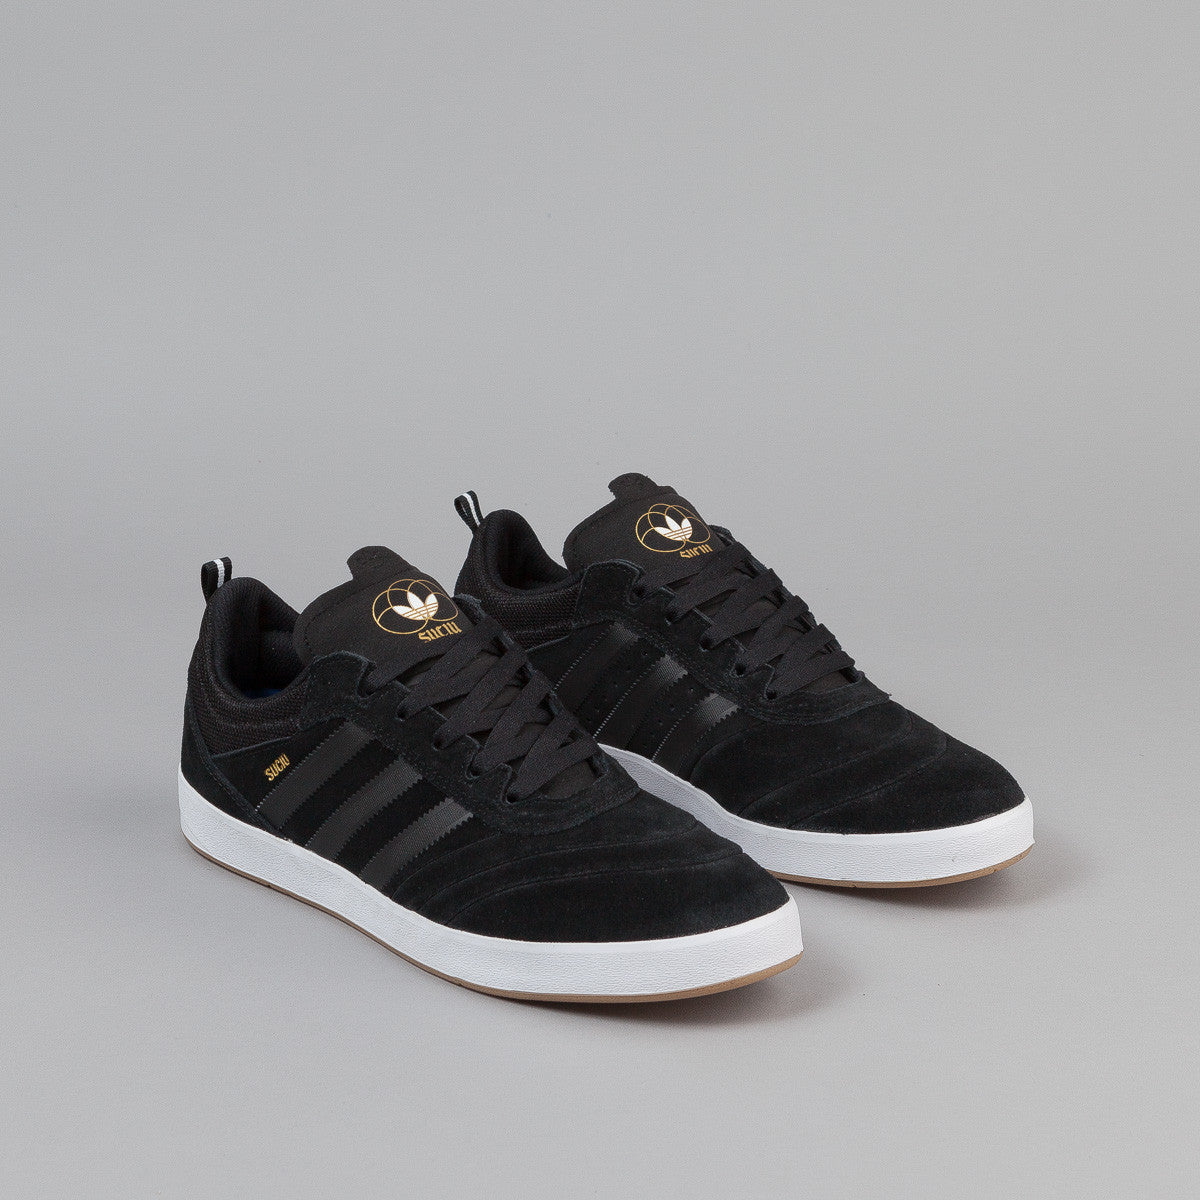 Adidas Suciu ADV Shoes - Core Black / FTW White / Gold Metallic